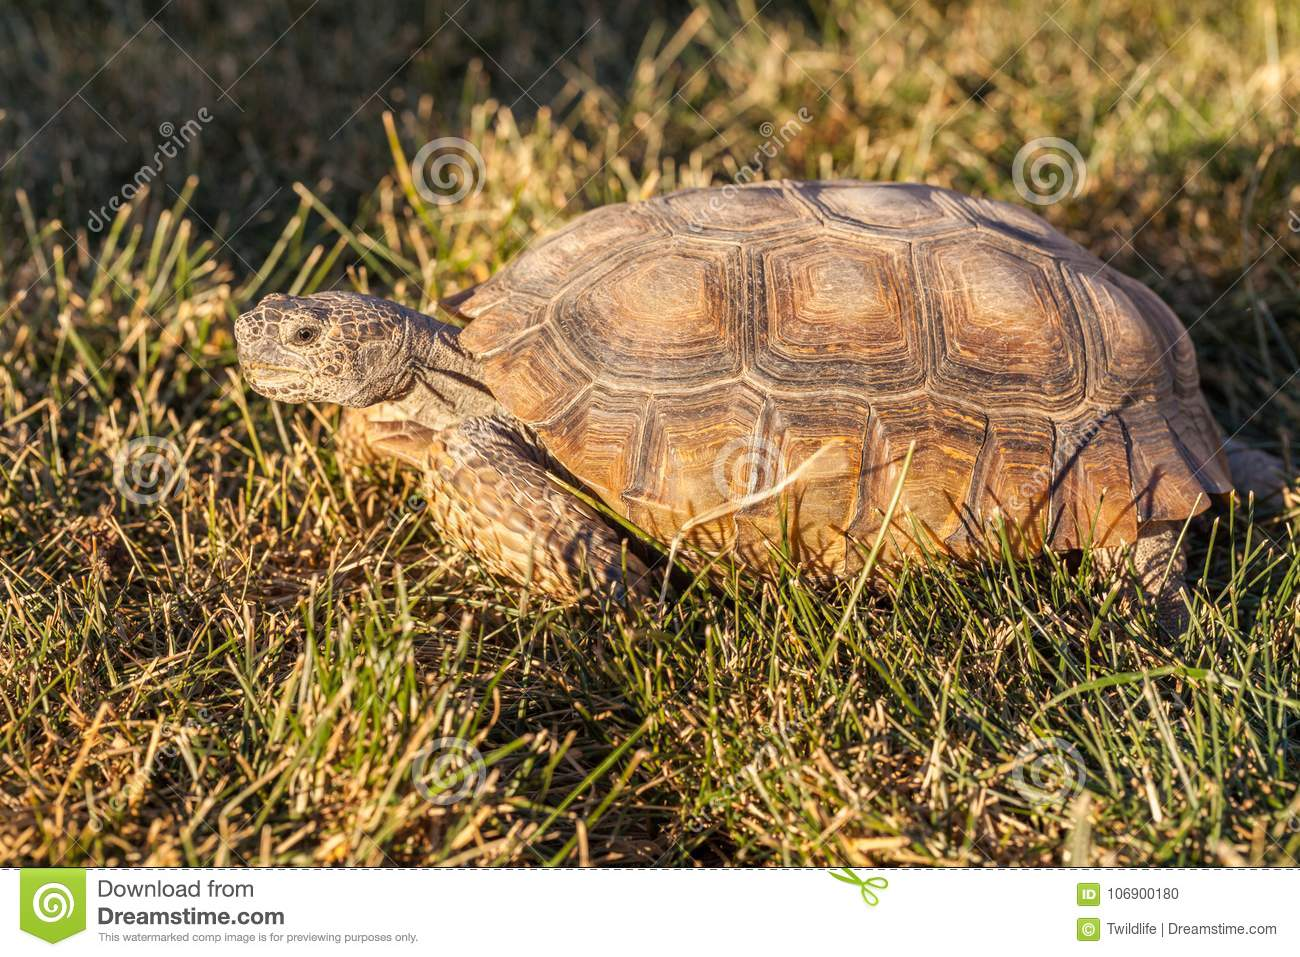 Desert Tortoise in Grass